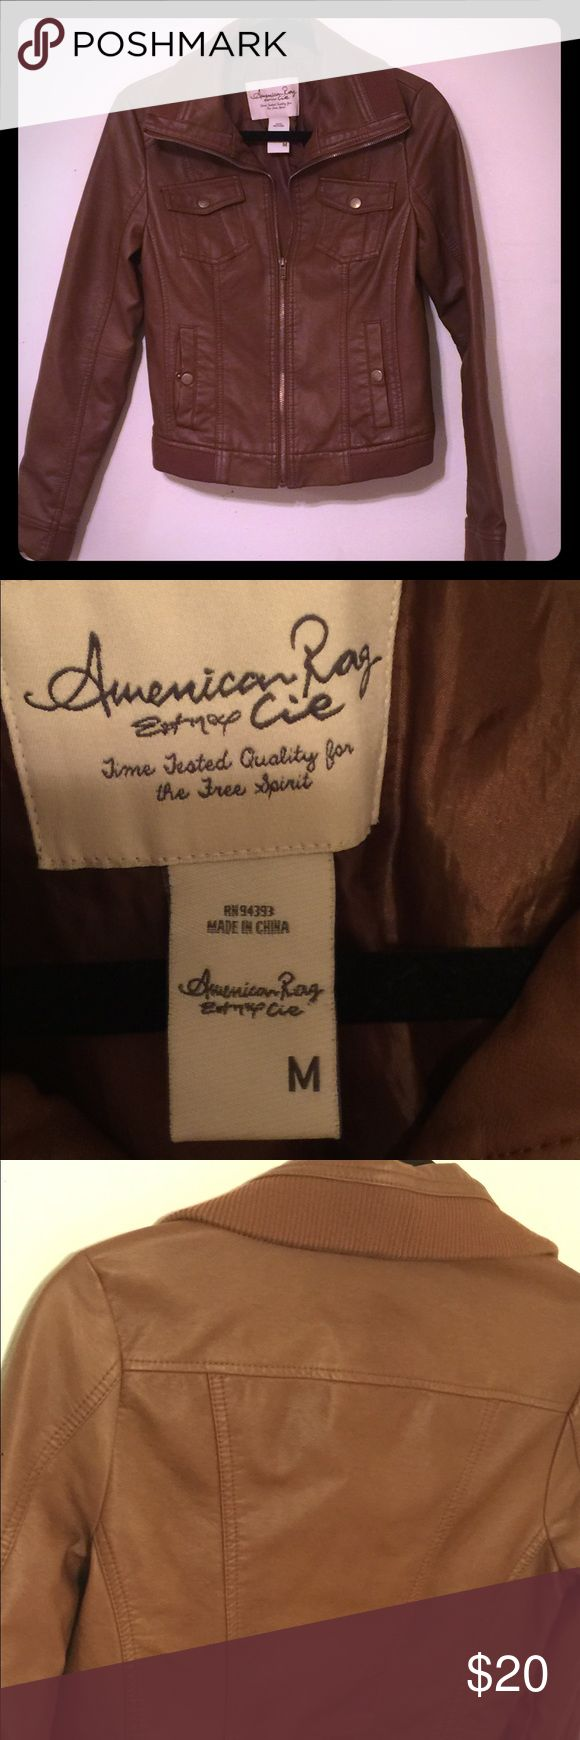 American Rag jacket This is a very cute American rag faux leather jacket in great condition. Perfect for fall or in between season. American Rag Jackets & Coats